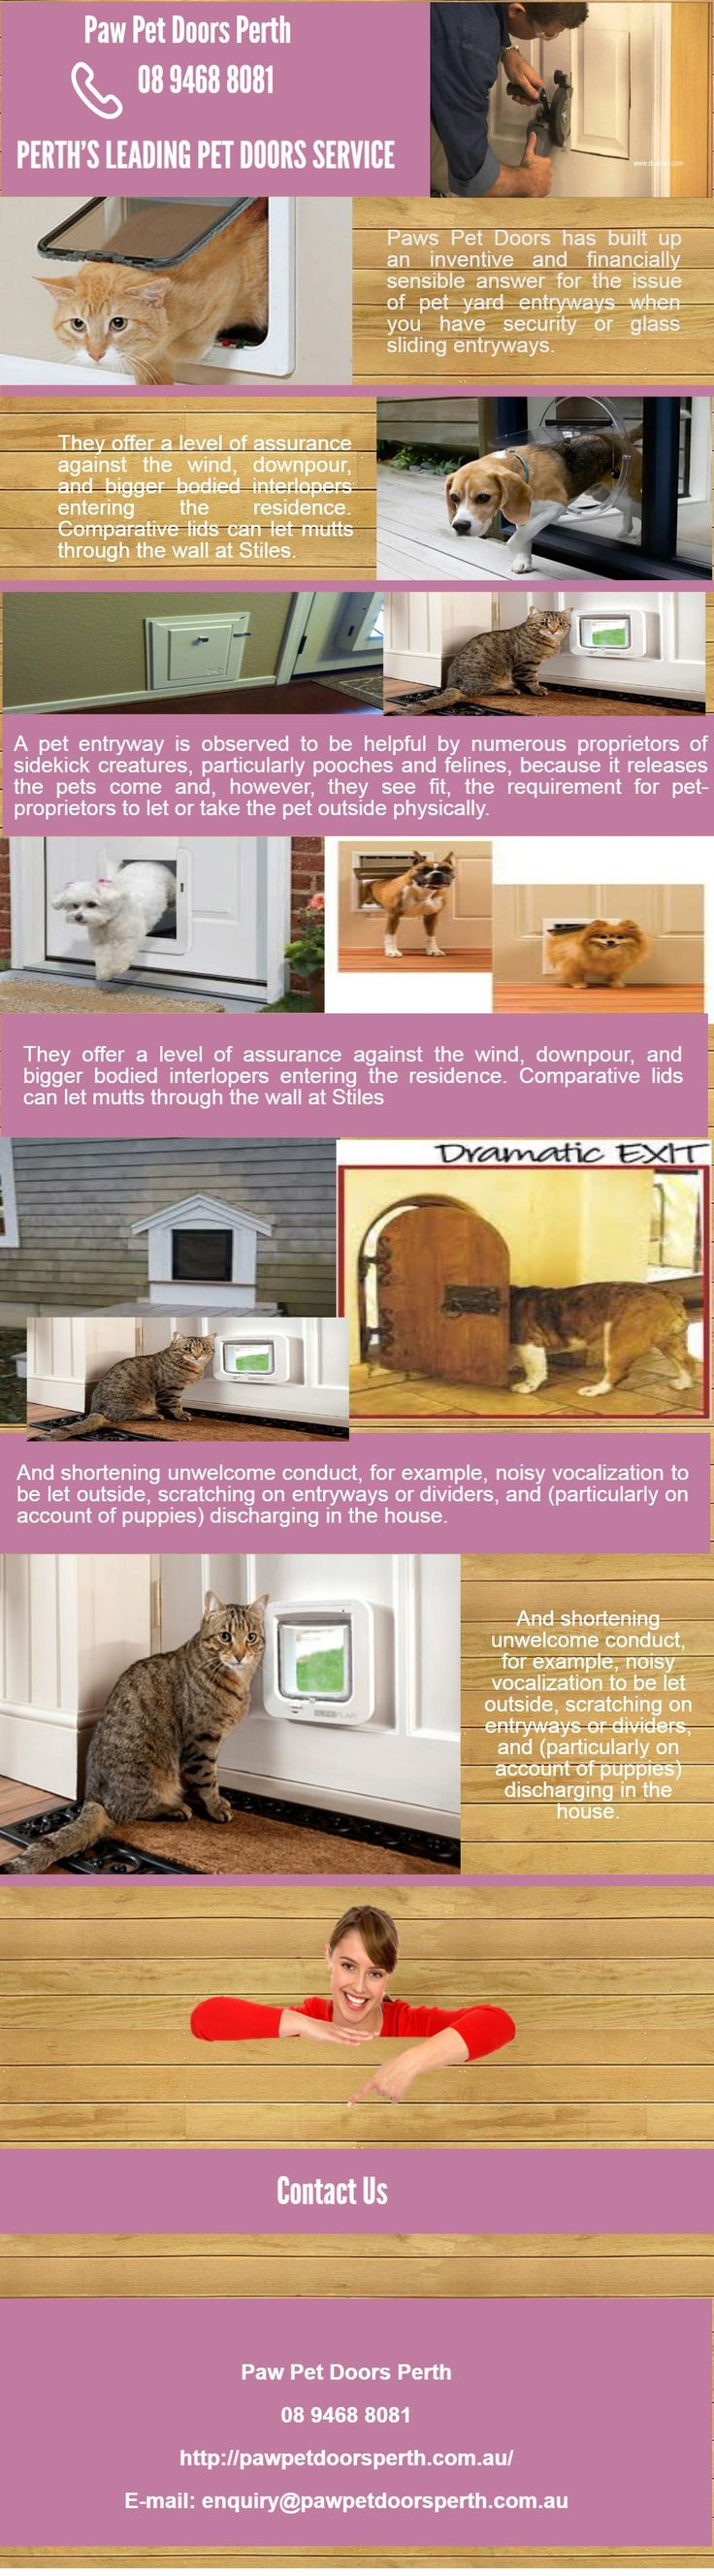 We provide Best Paw Pet Doors in Perth to protect your pet and provide comfortable home. To know more visit us 158 St Georges Terrace, PERTH WA 6000 or visit us at Call at us 894688081.